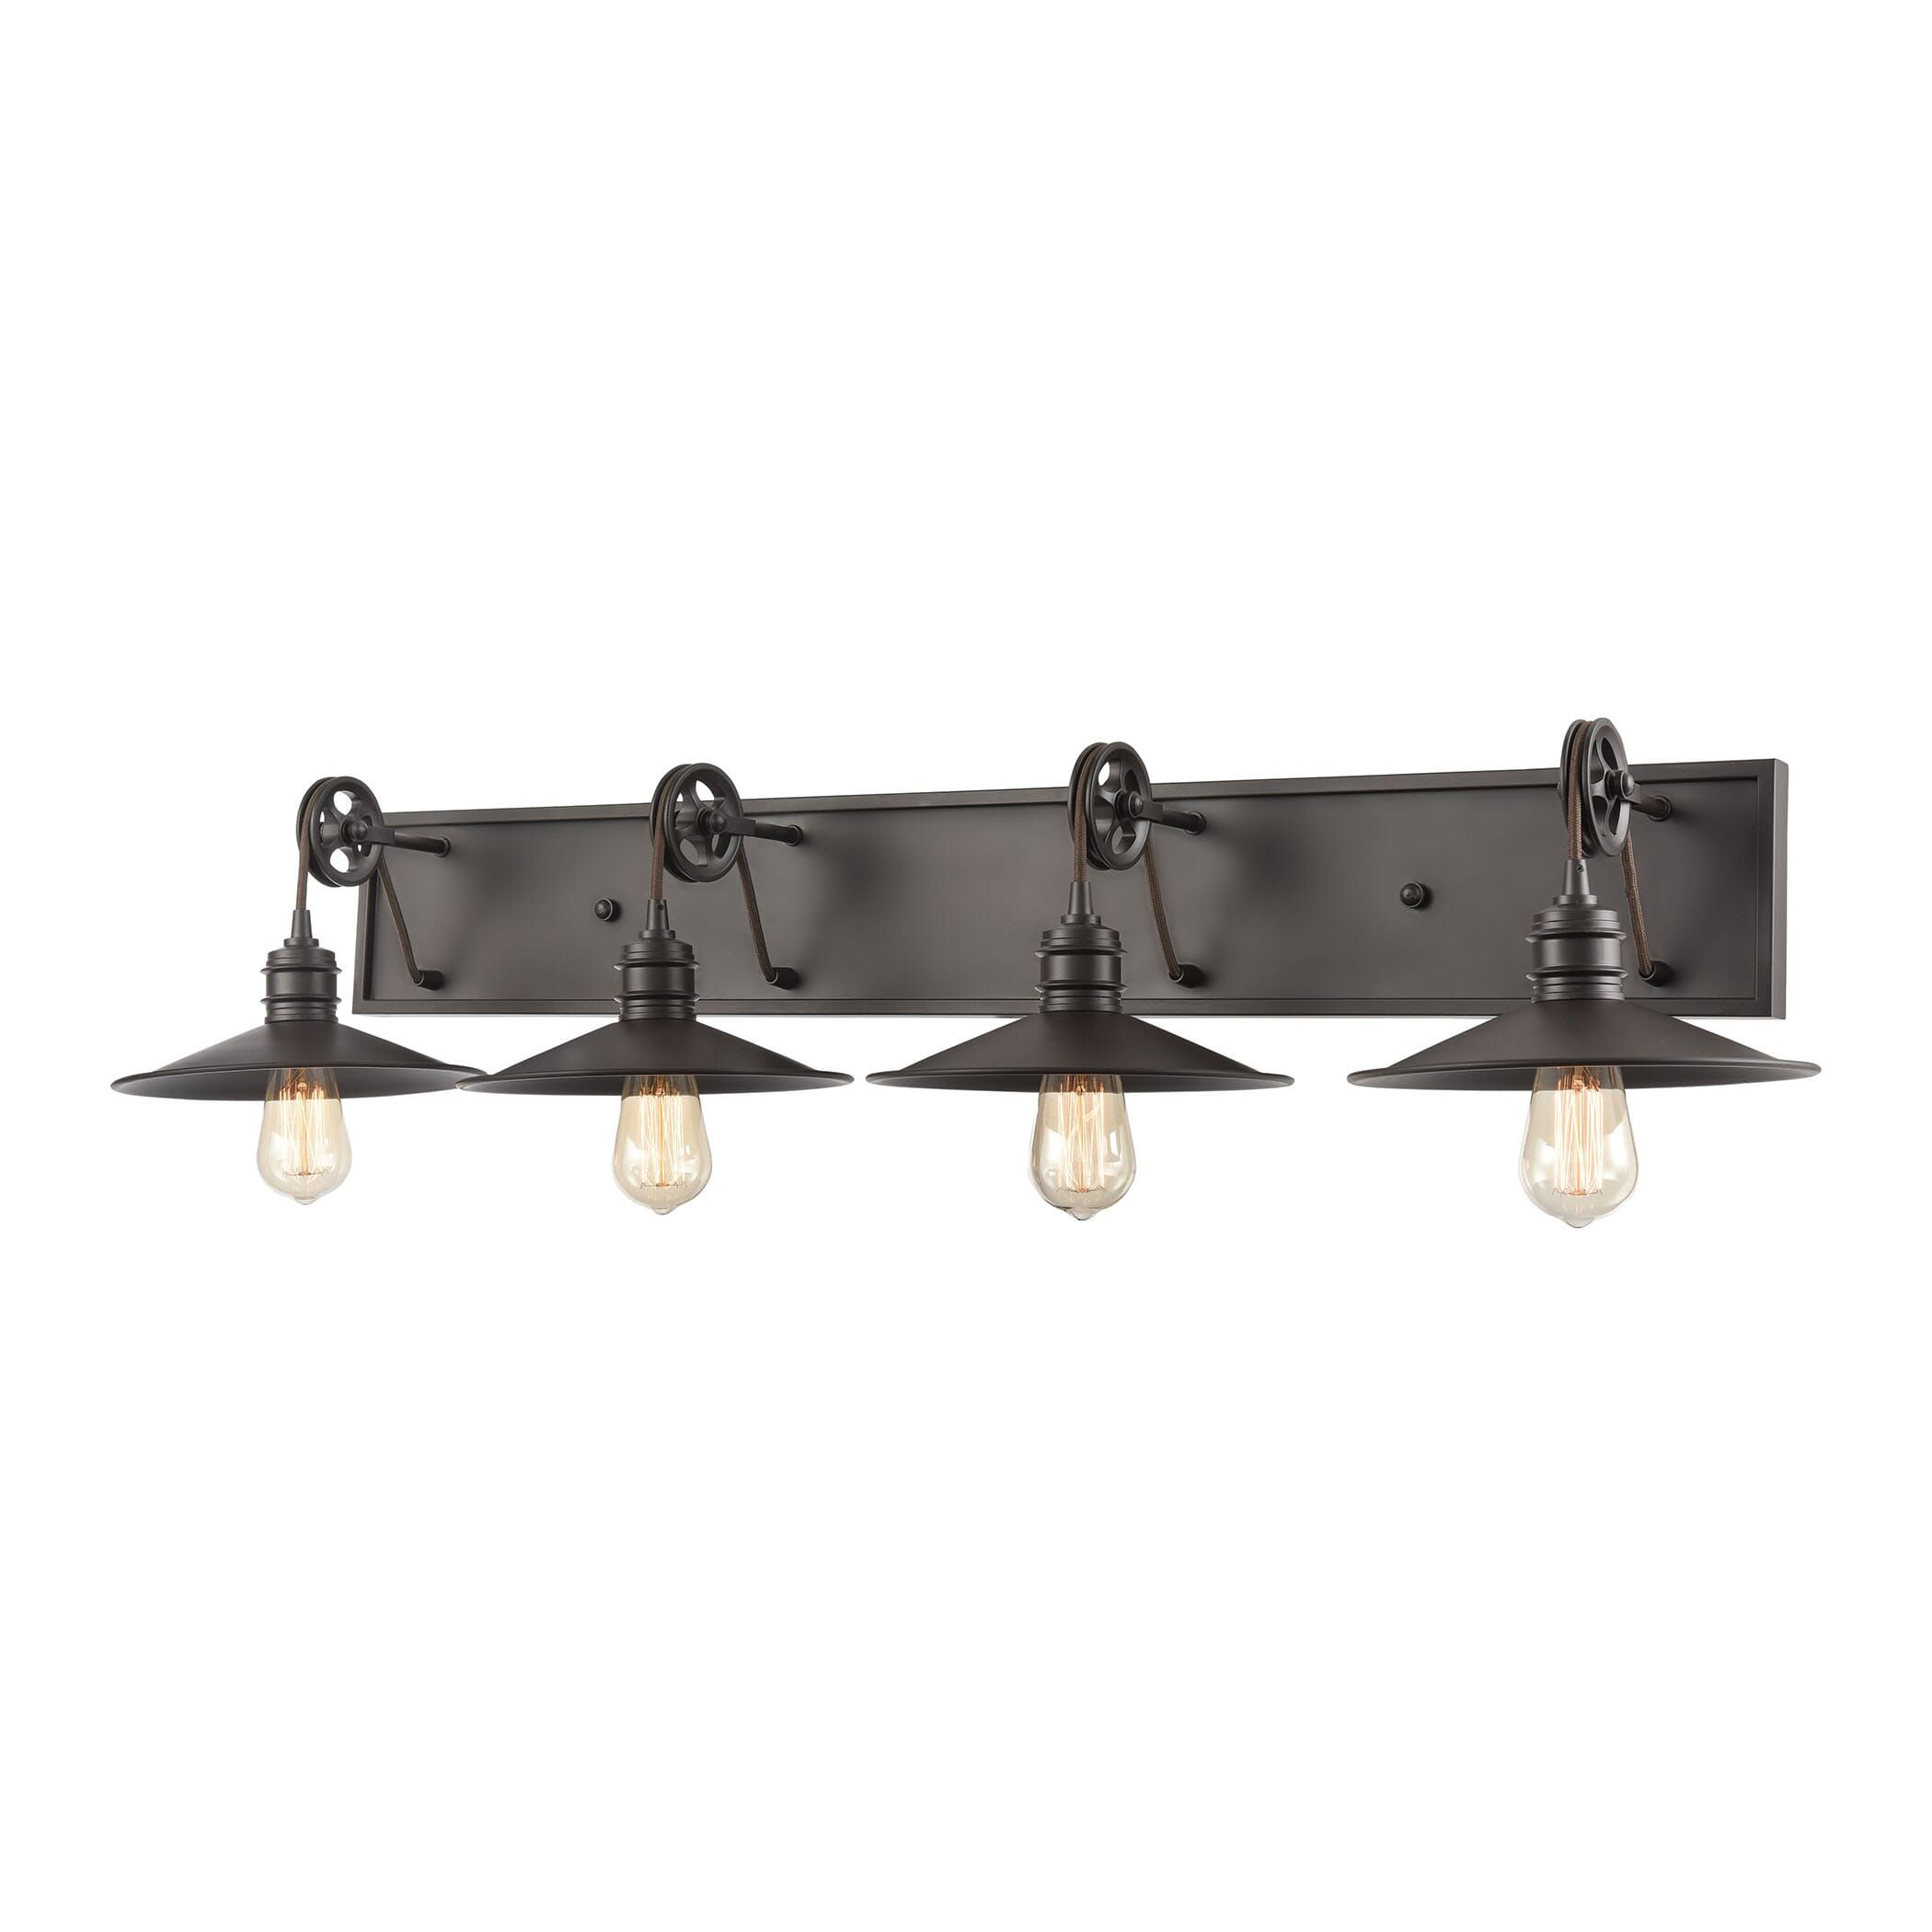 "Photo of ELK spindle wheel 4-Light 42 ""bathroom Vanity Light rubbed in oil bronze"